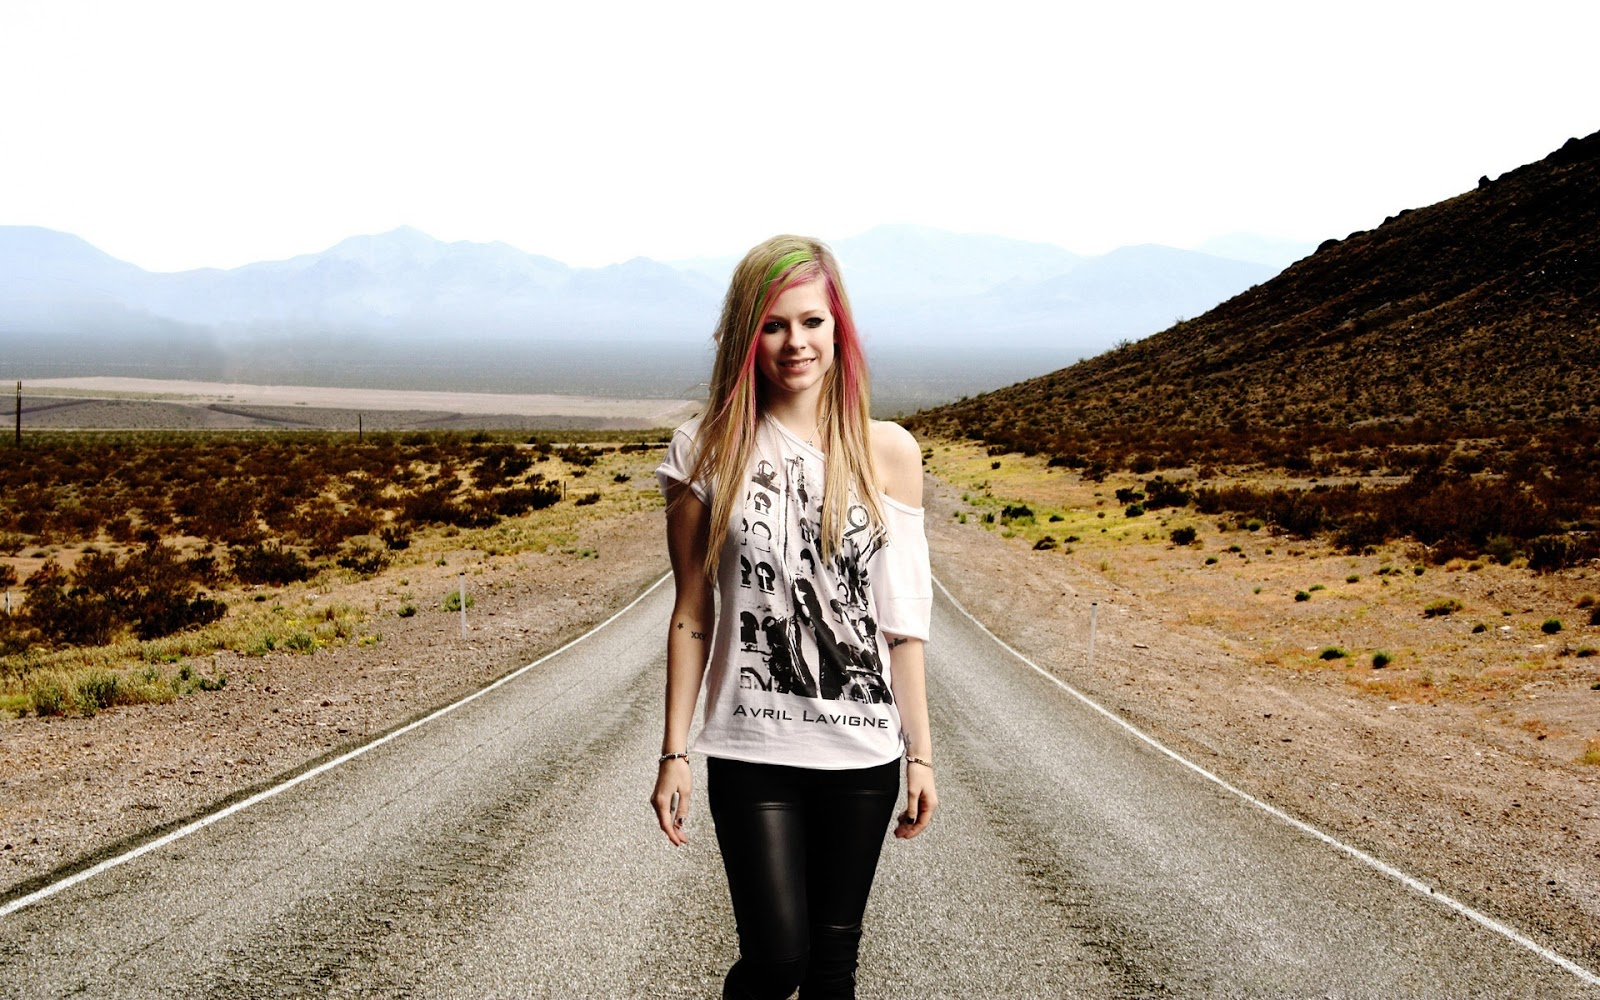 Avril Lavigne on the Road